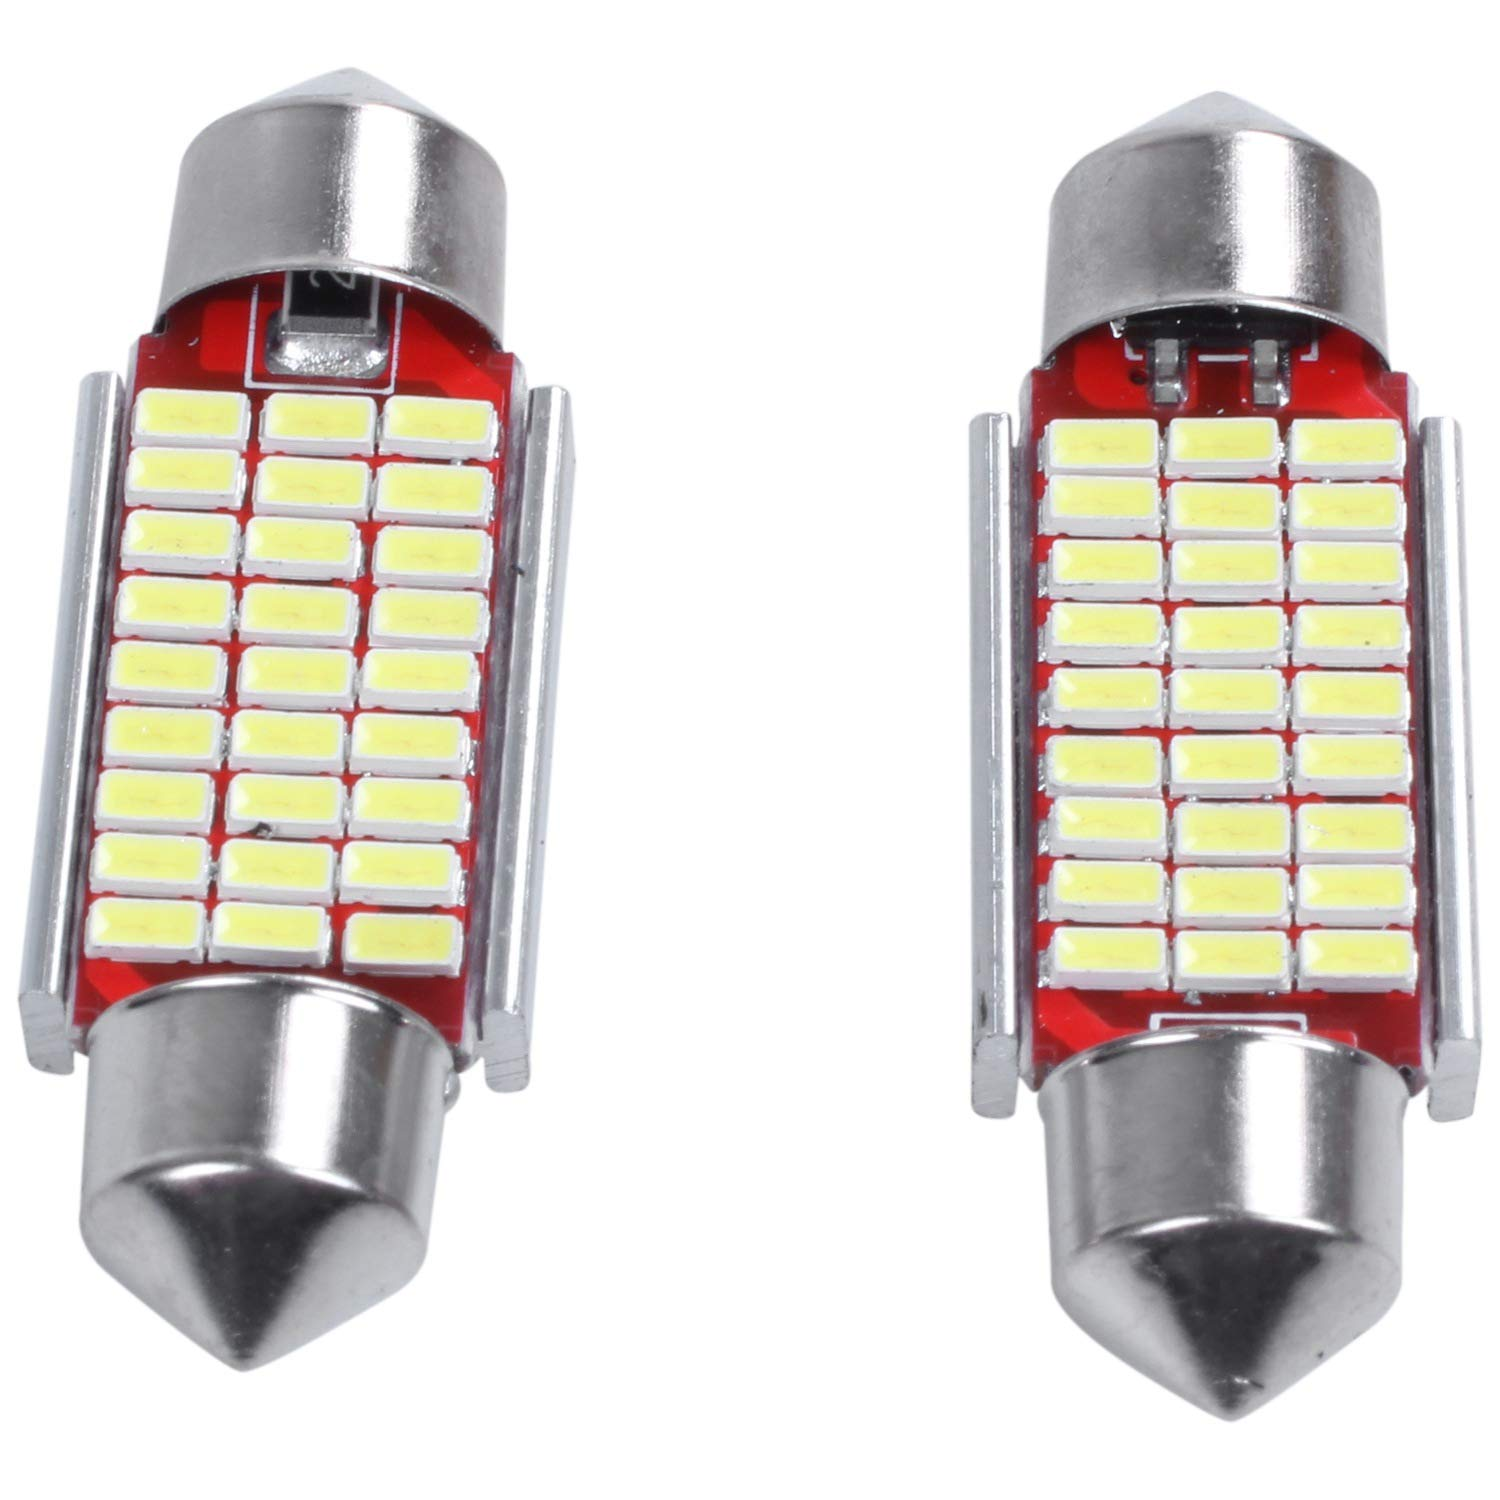 Binchil 2Pcs C5W C10W 36mm 3014 27SMD Festoon Led Canbus Car Inteiror Bulb License Plate Light 12V